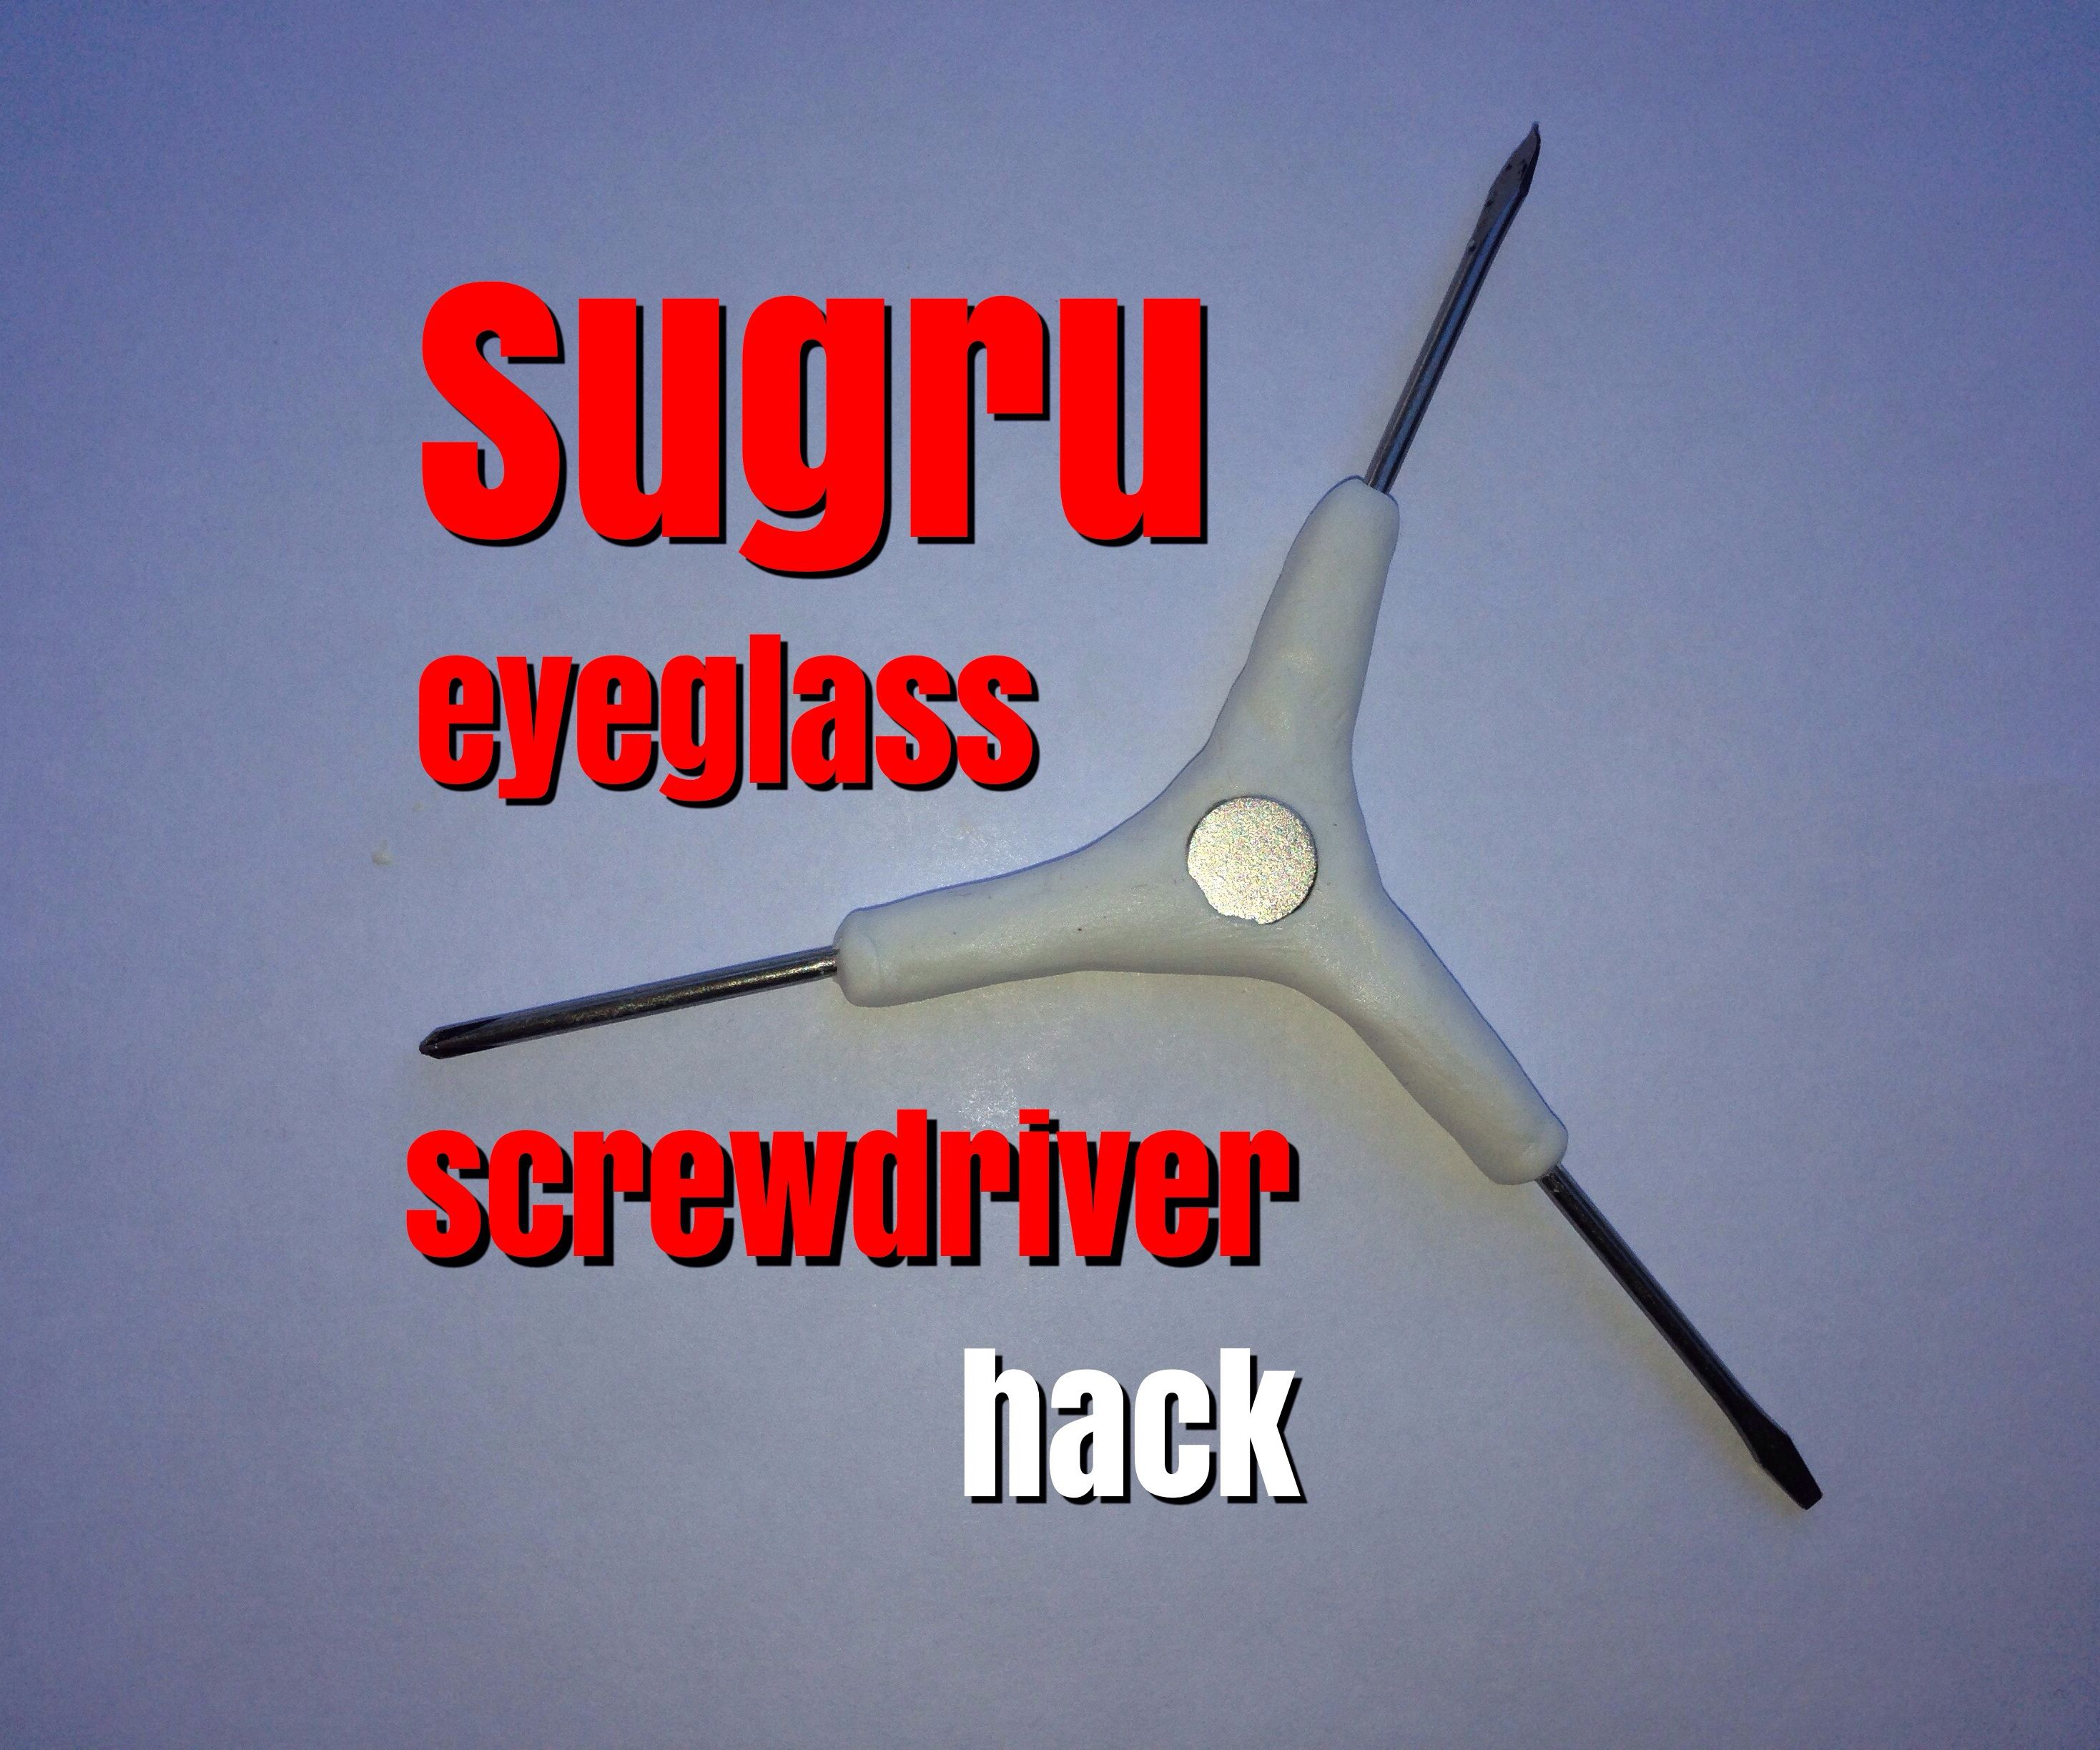 Sugru Eyeglass Screwdriver Hack